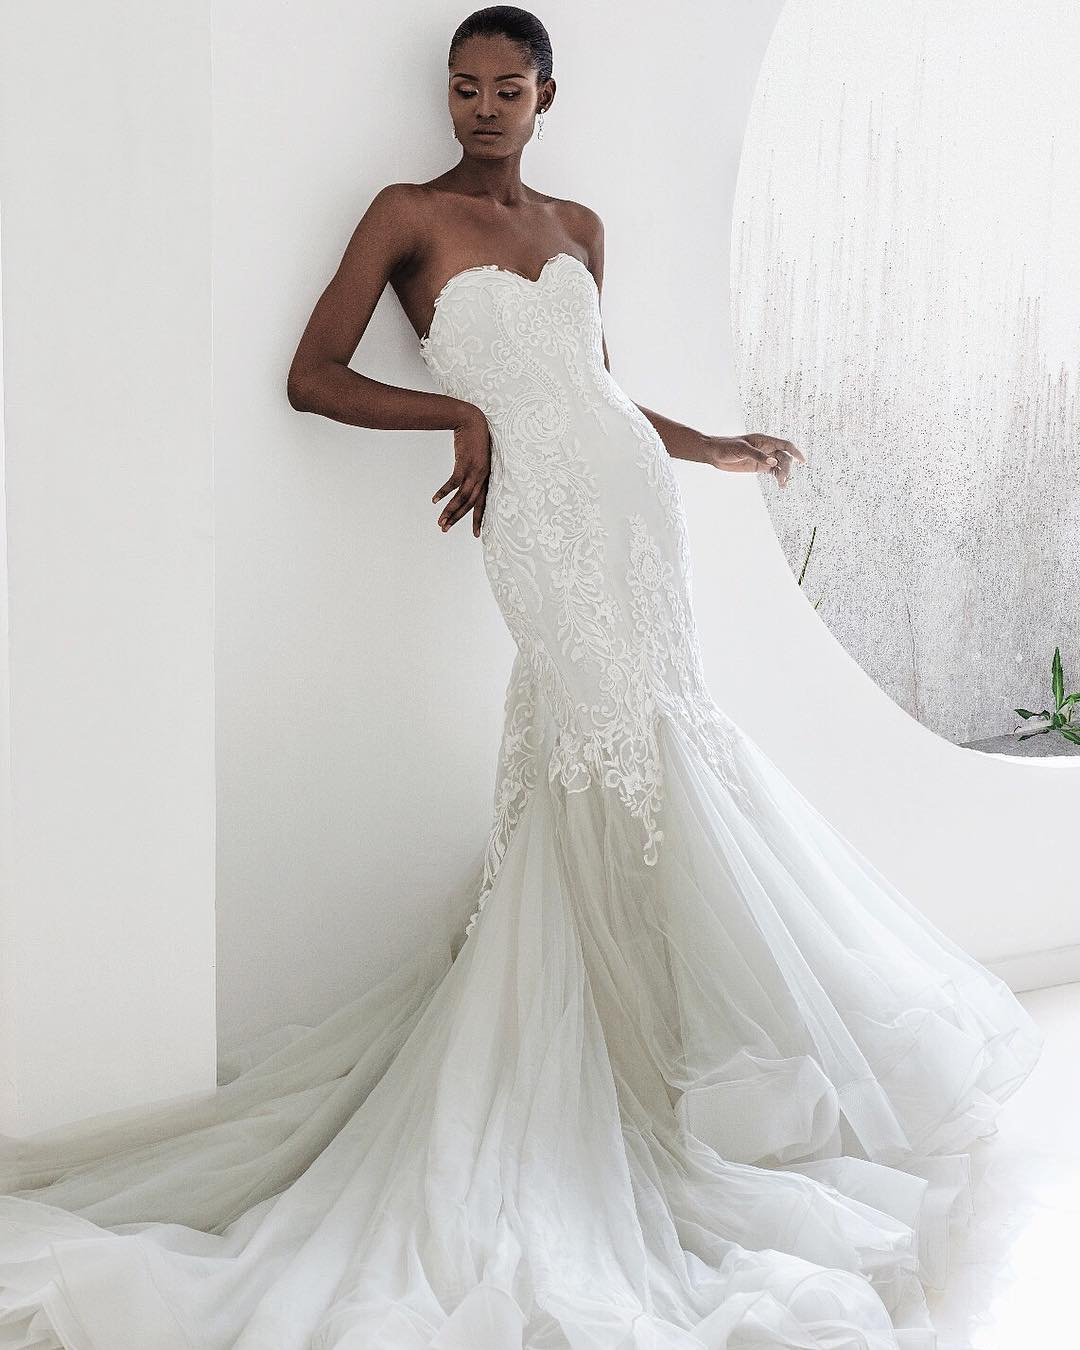 Andrea Iyamah Bridal Collection Fashion Police Nigeria